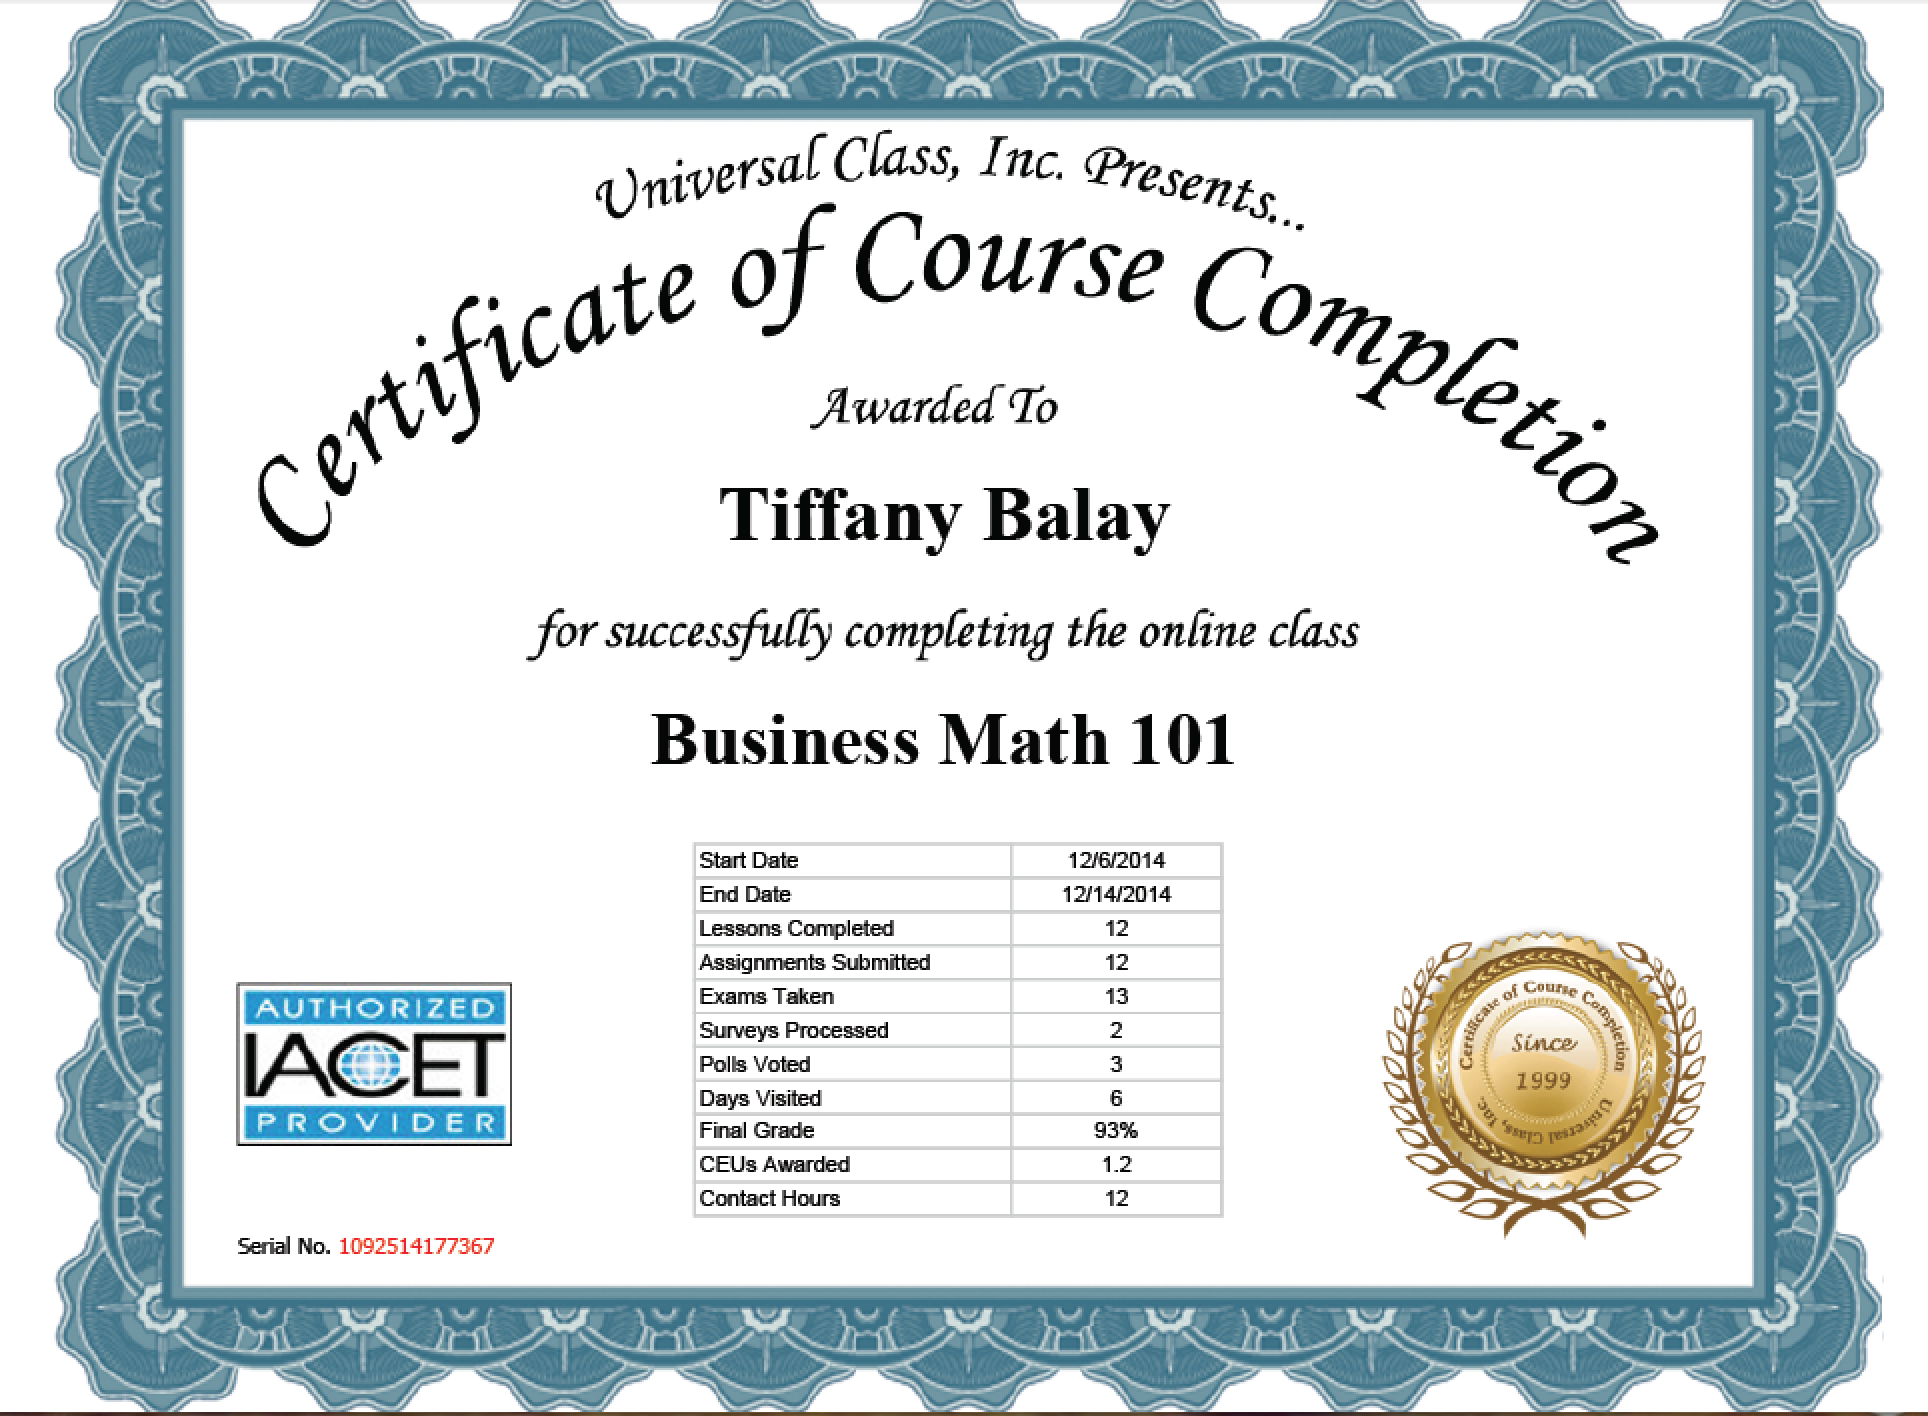 Business Math 101 Certificate